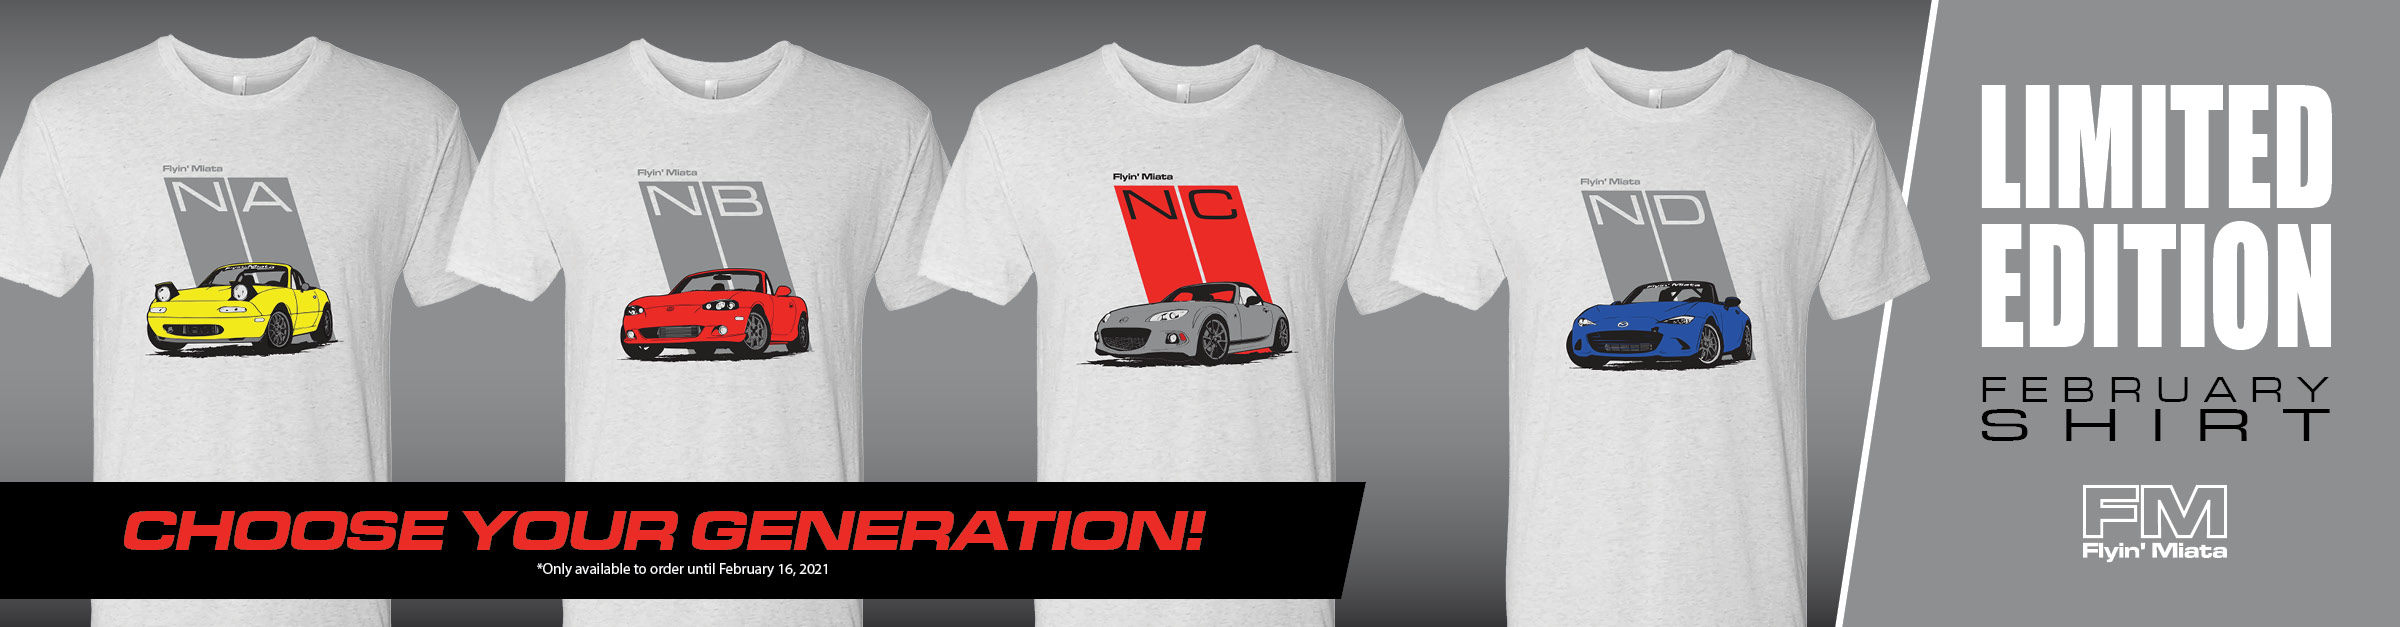 NEW! Exclusive Limited Edition February Shirt!